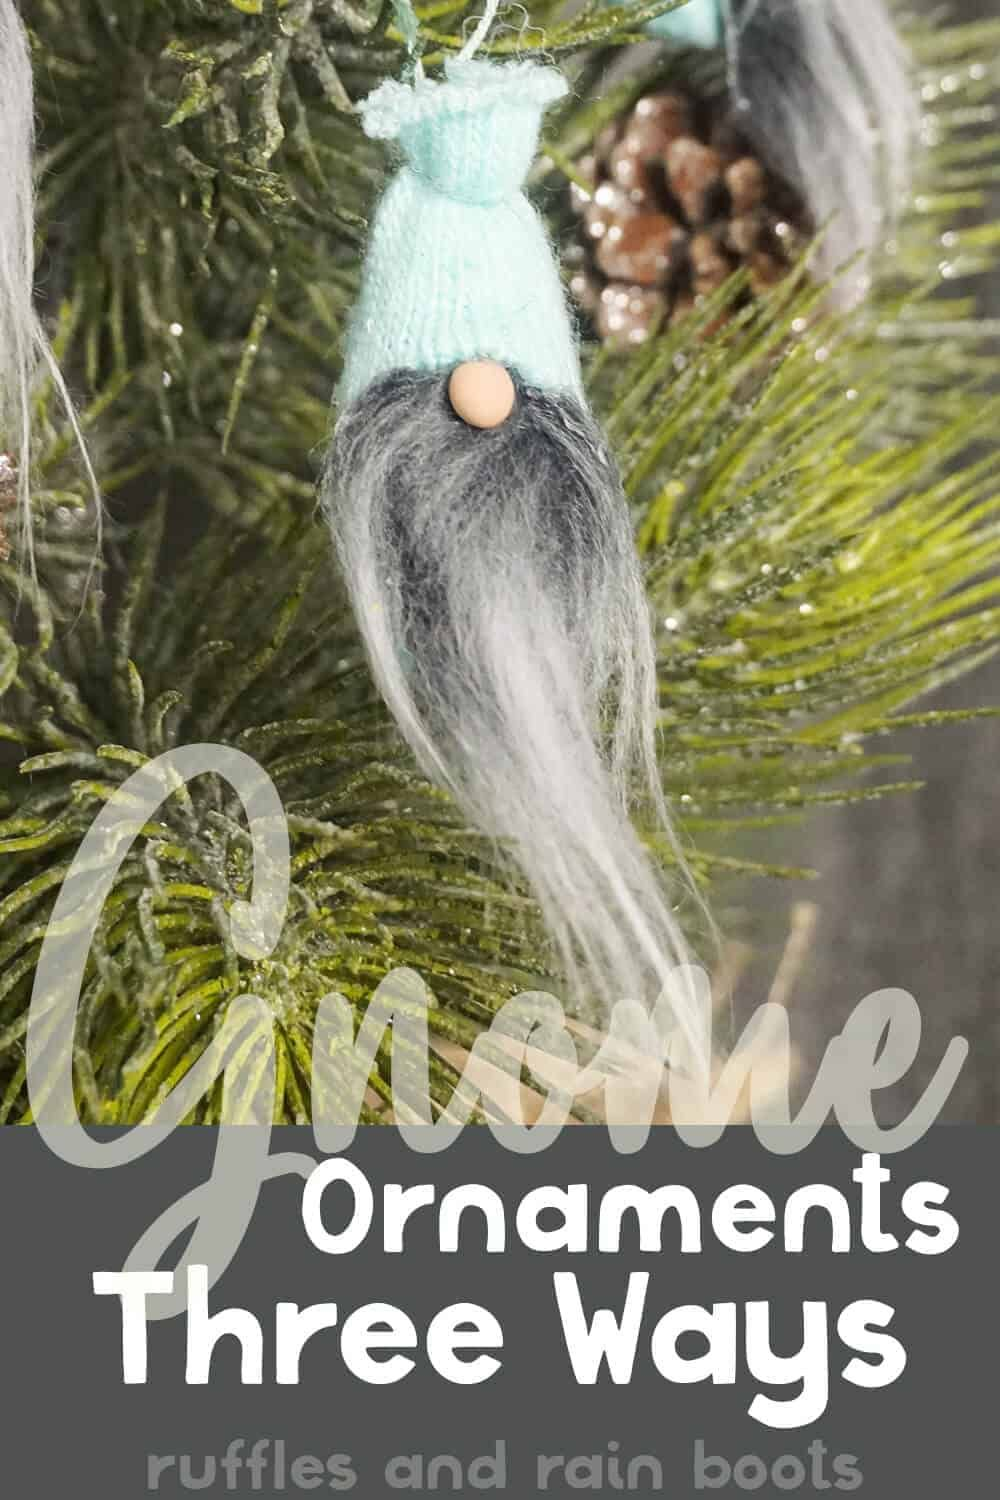 Mini Gnome Ornaments From Glove Fingers 3 Ways Easy Christmas Ornaments Gnome Ornaments Gnomes Crafts